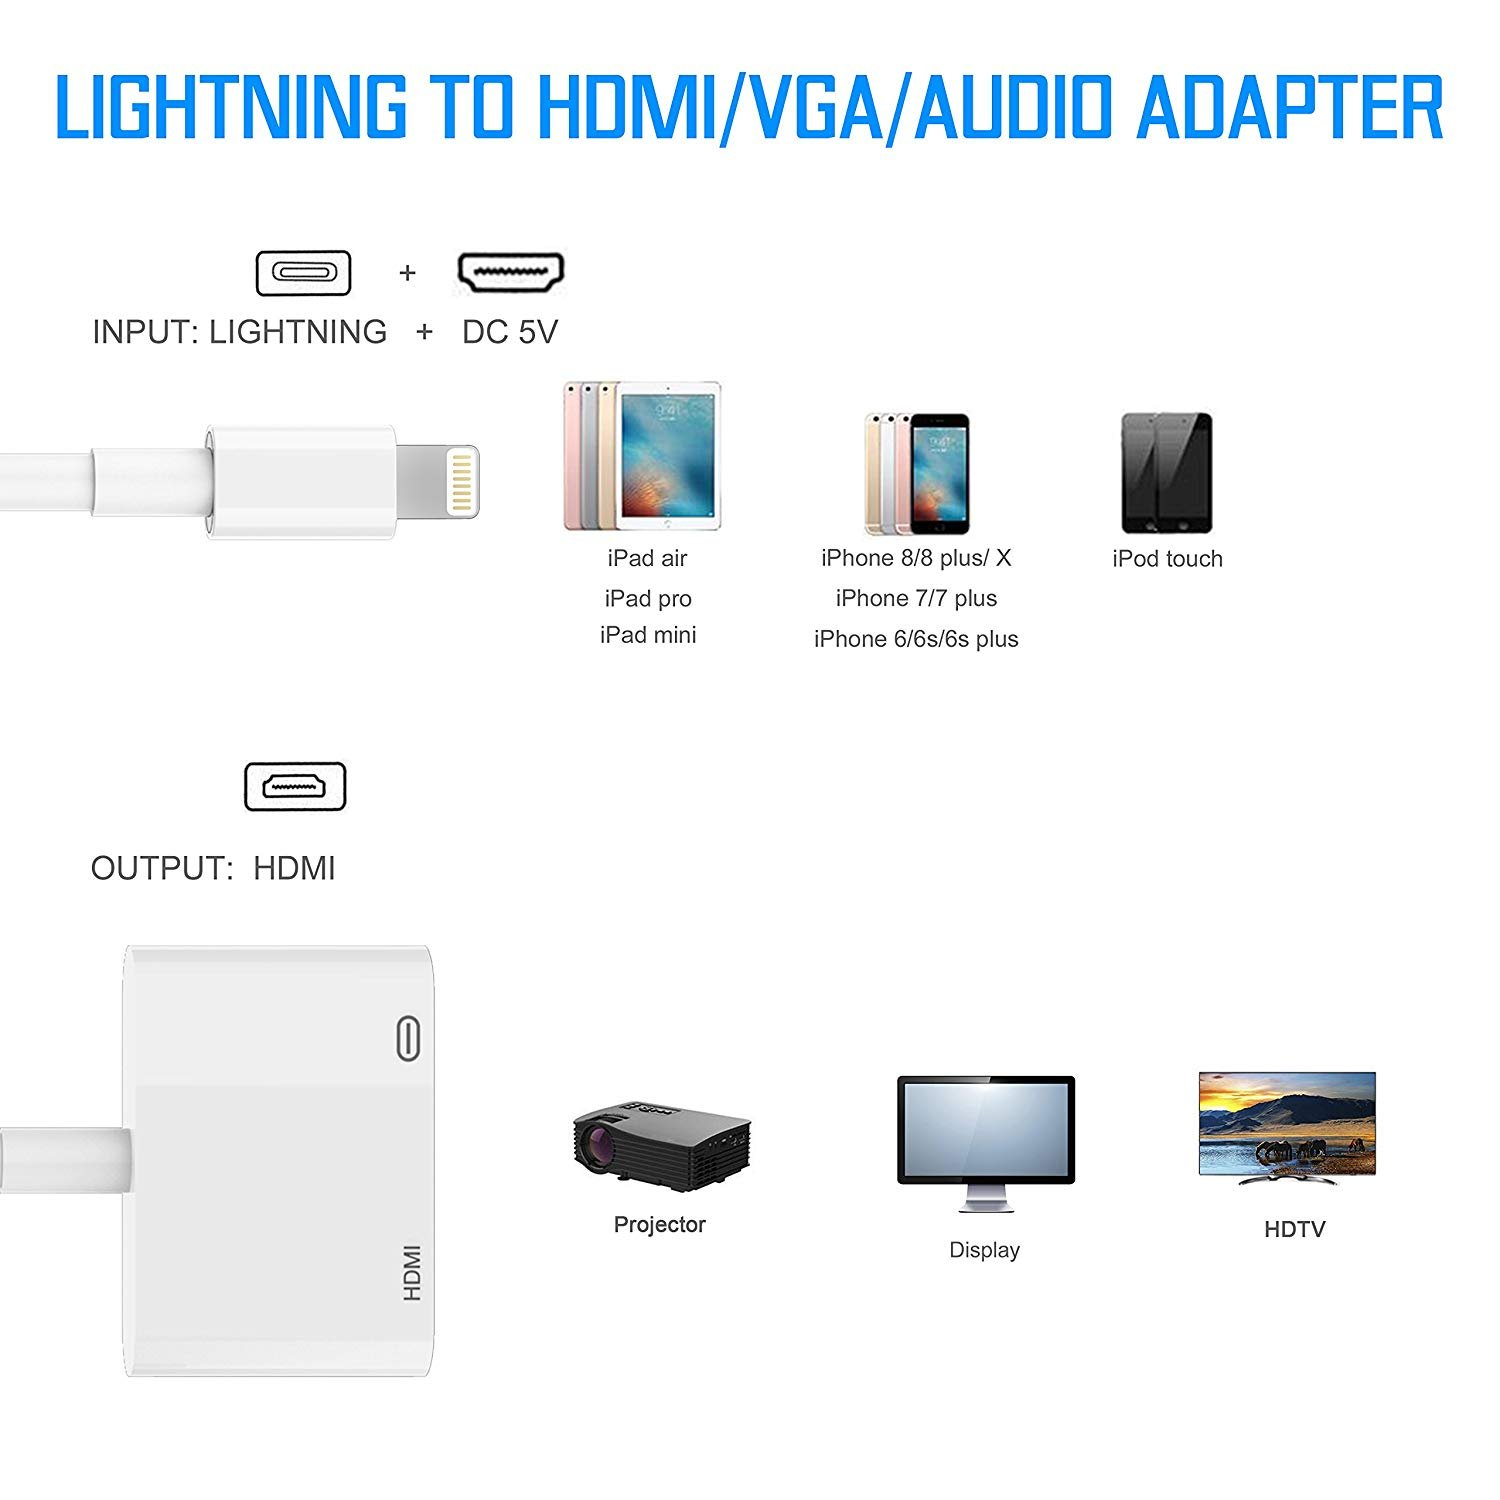 amazoncom doozie lightning to hdmi adapter by iphone ipad ipod to